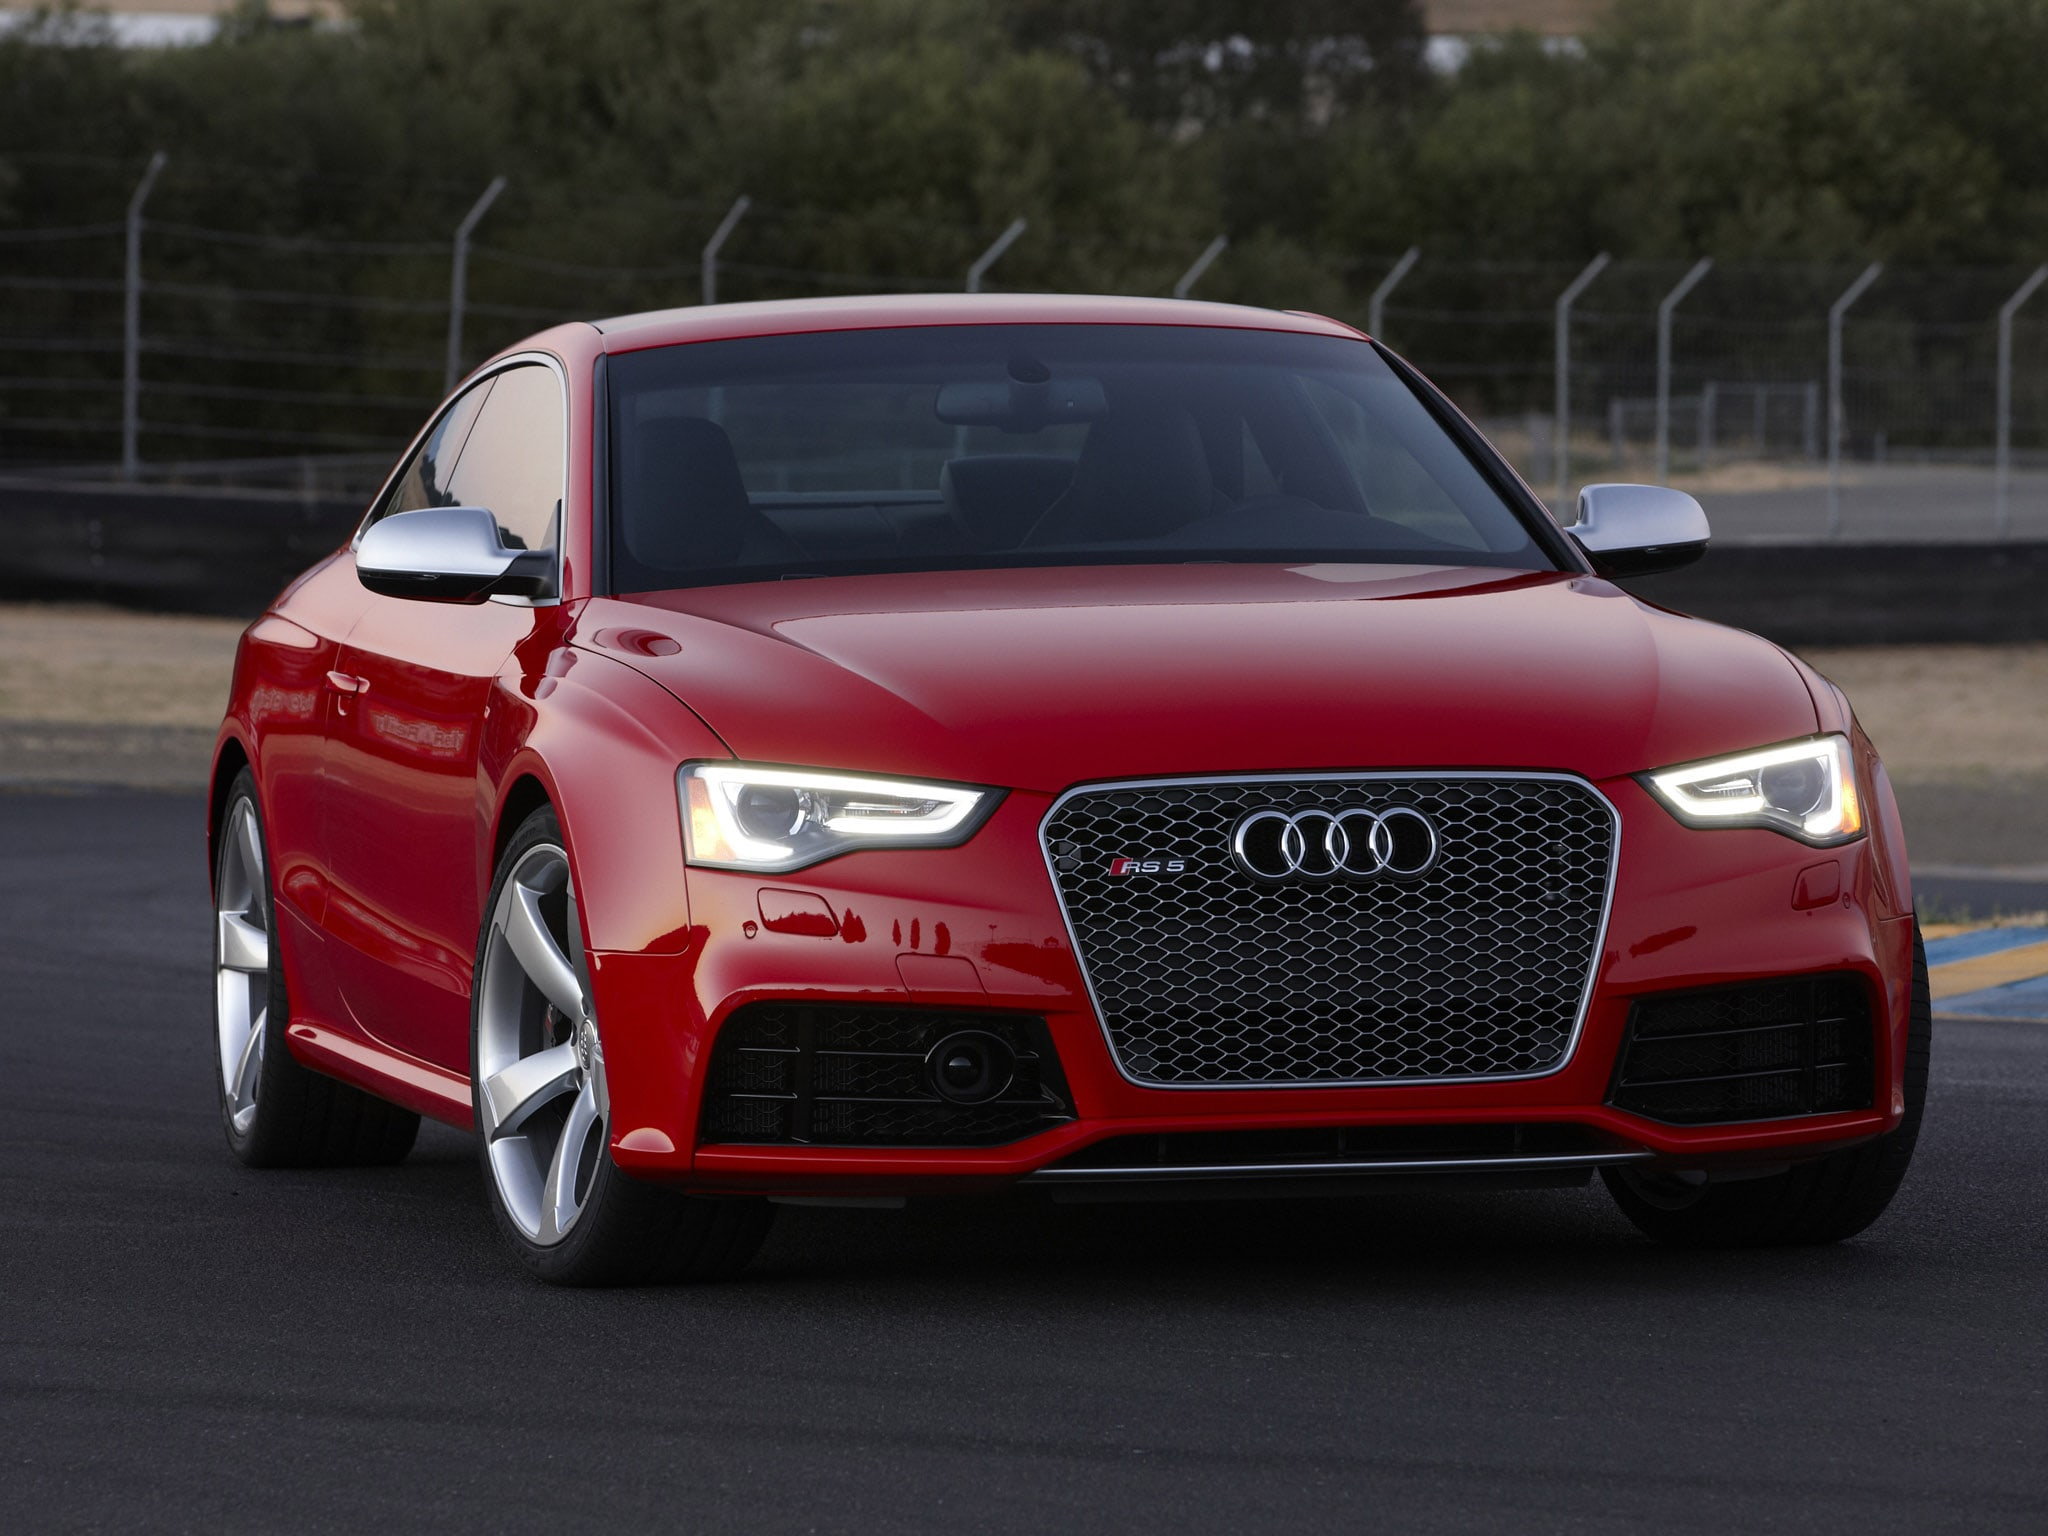 2012 Audi RS5 Wallpapers hd